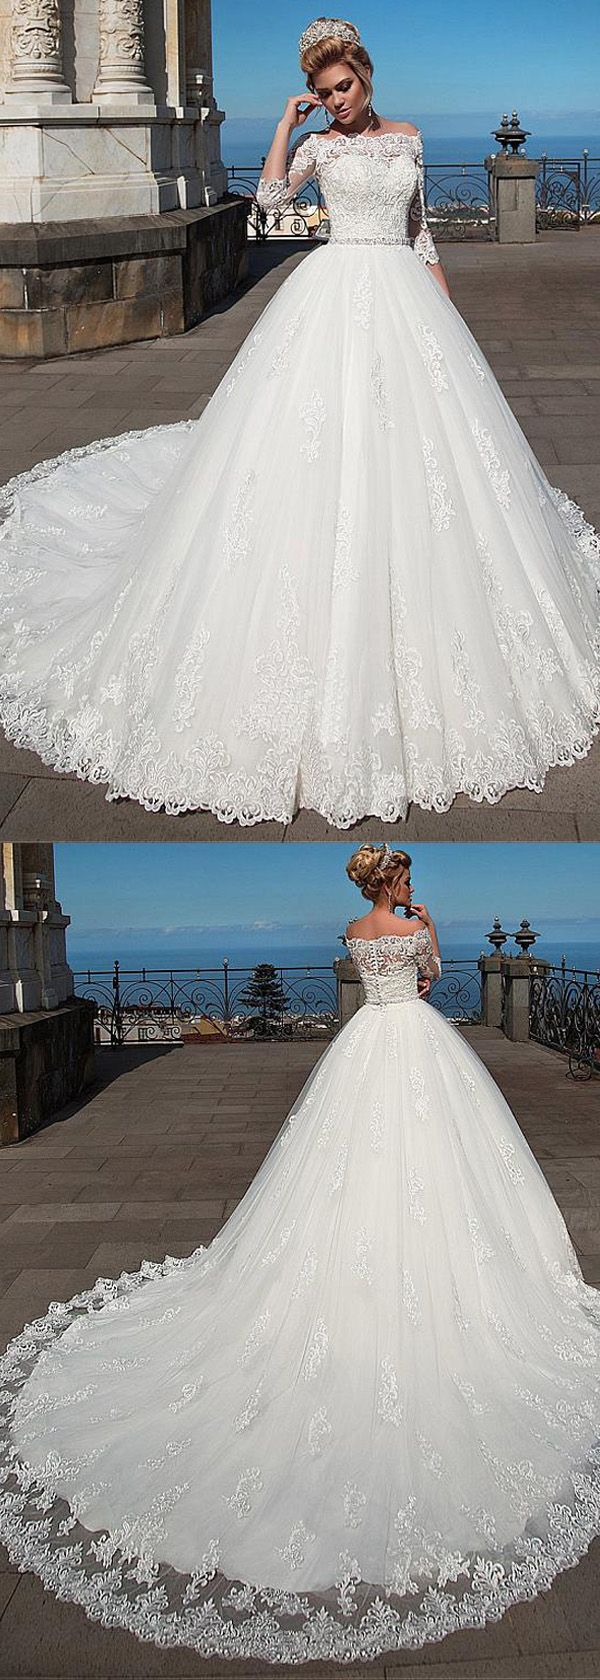 Romantic Tulle Off-the-shoulder Neckline Ball Gown Wedding Dress With Lace Appliques & Belt & Detachable Jacket